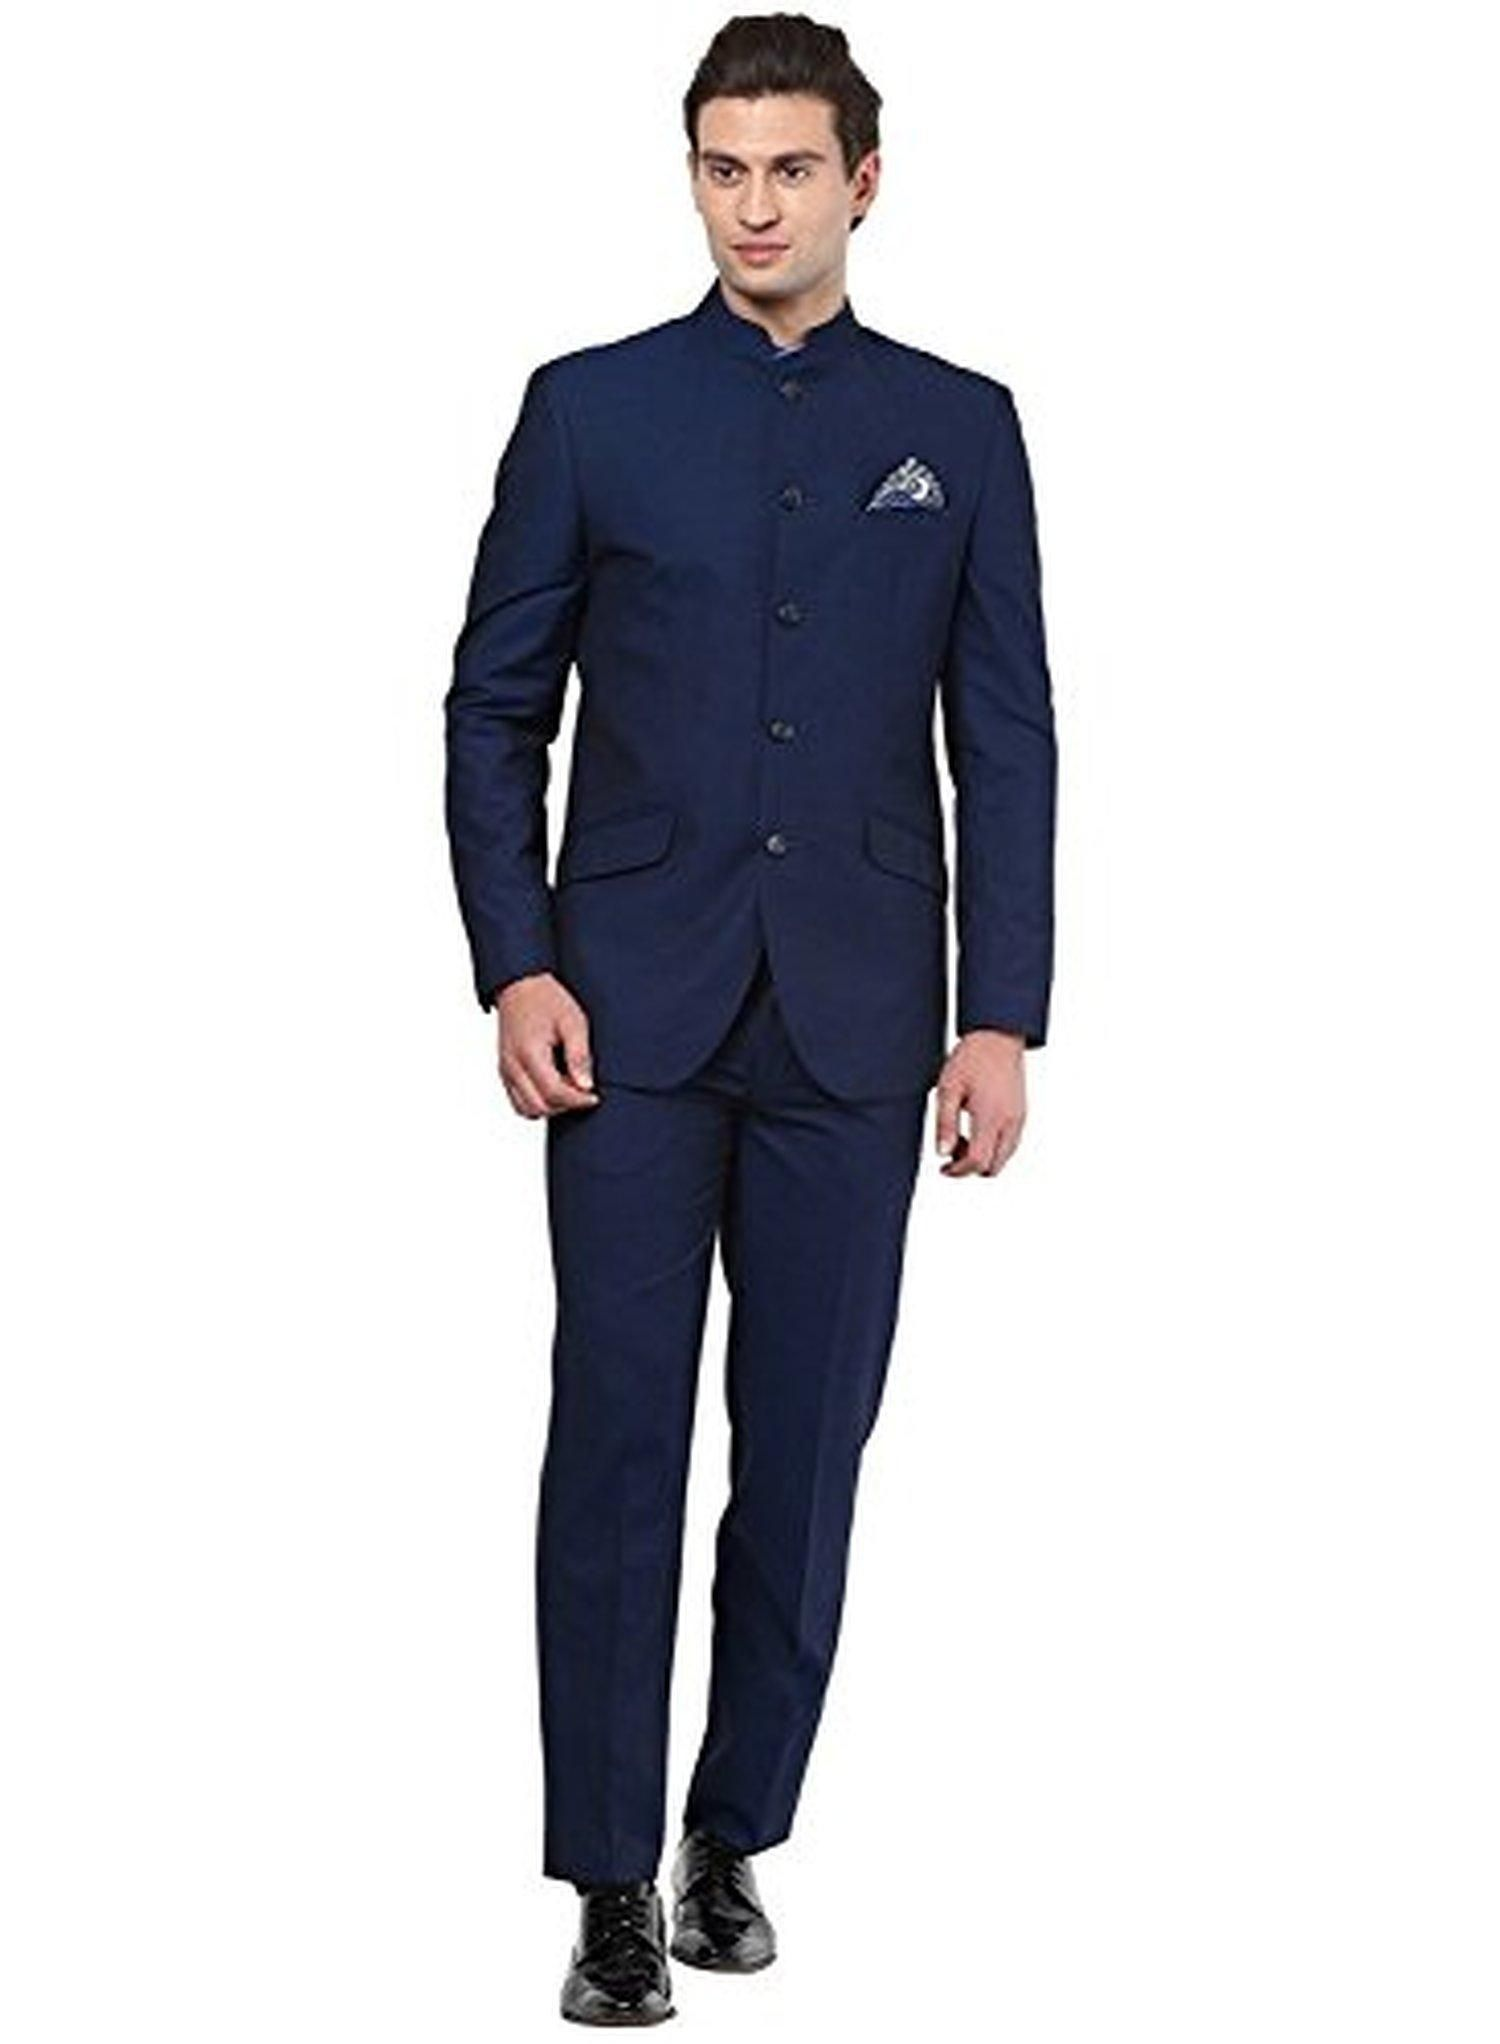 Mens Black Nehru Grandad Collar Suit Ideal For Wedding 36 Jacket 30 Trouser Navy Blue Brought To You By Avarsha